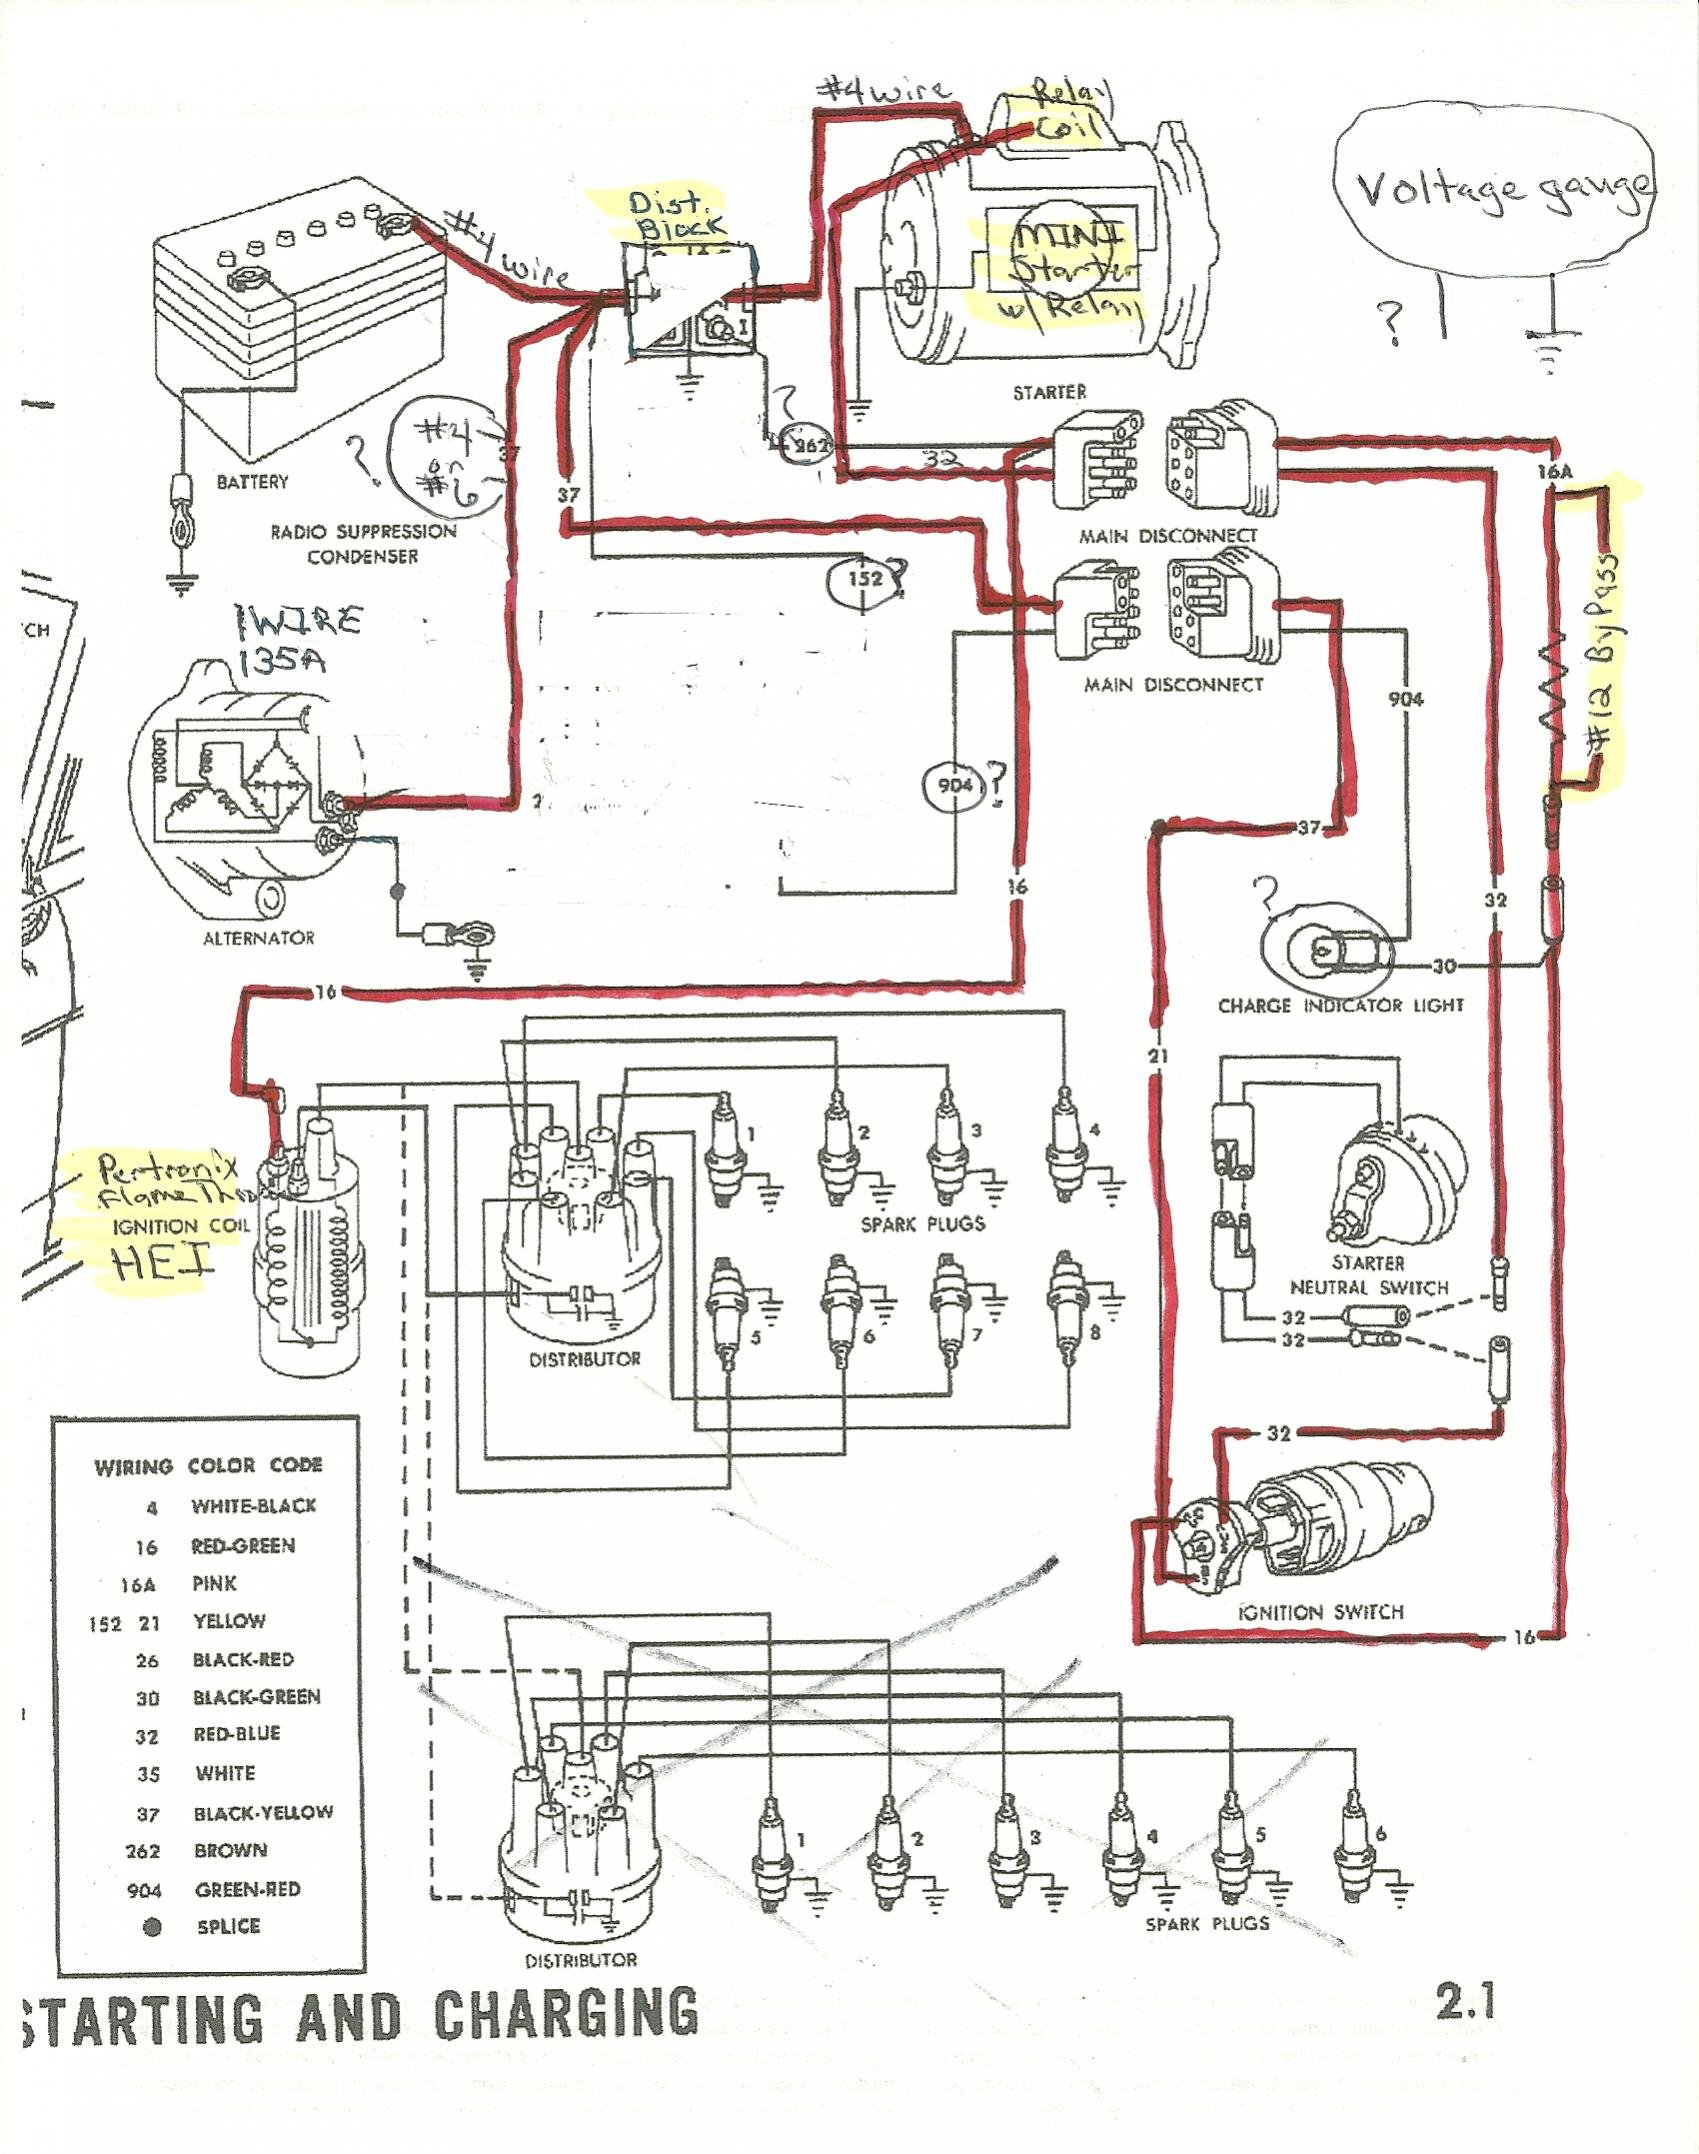 163469d1347246202 1965 alternator starter distributor wiring scan0001 1970 ford mustang mercury cougar original wiring diagram Ford Alternator Wiring Diagram at nearapp.co